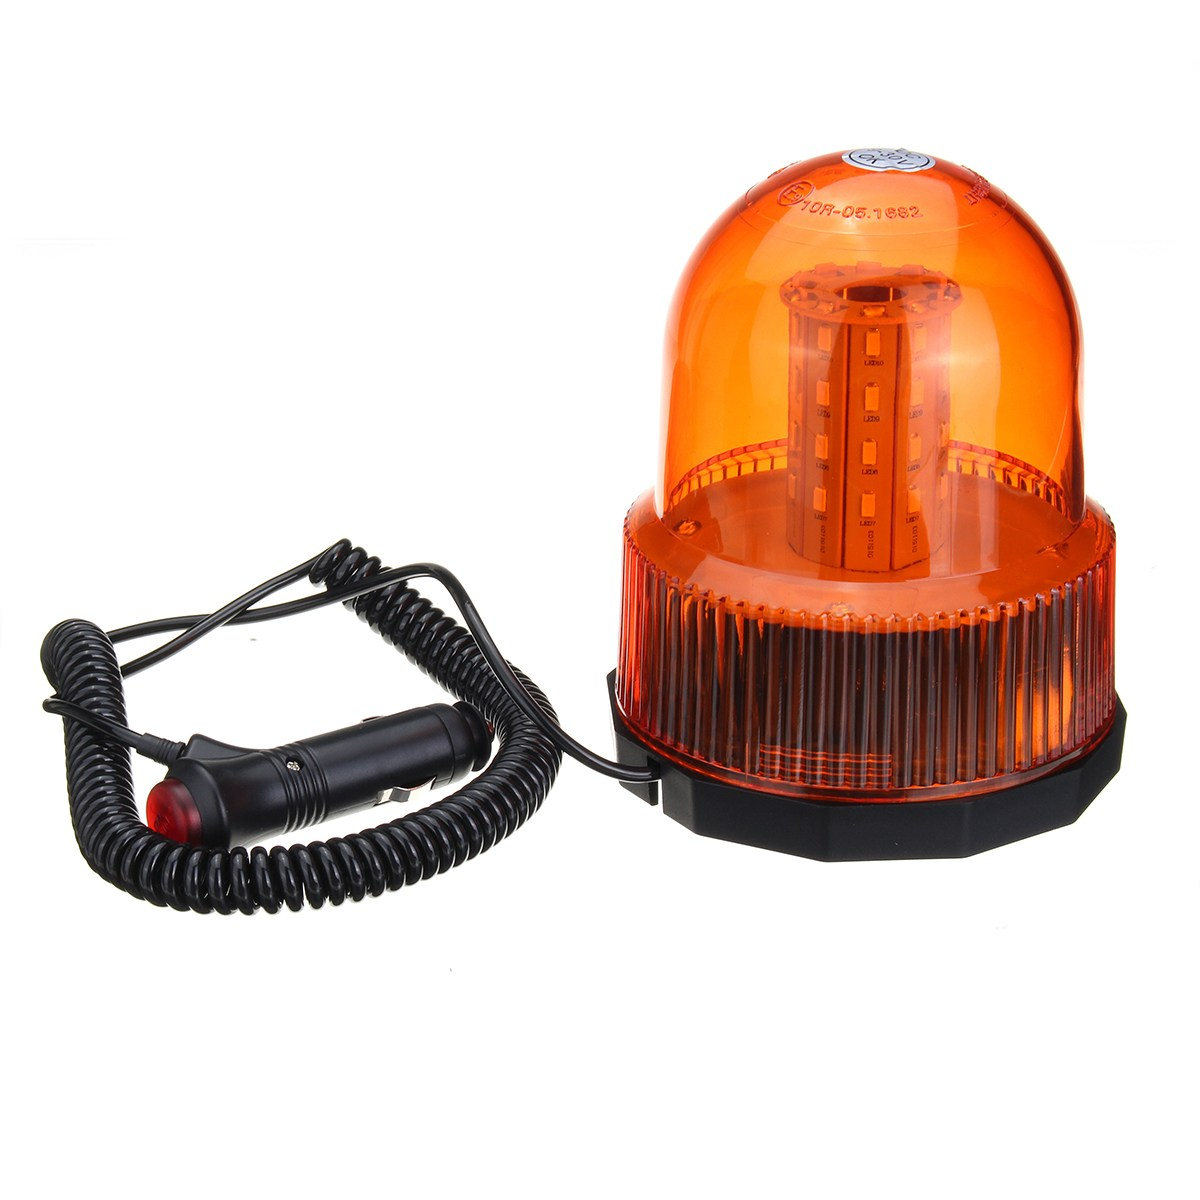 все цены на NEW 40 LED Magnetic Mount Rotating Flashing Amber Dome Beacon Recovery Warning Light Roadway Safety онлайн